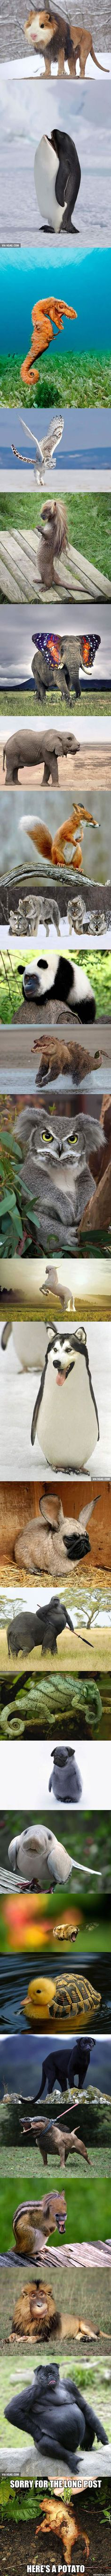 These animal hybrids never get old.